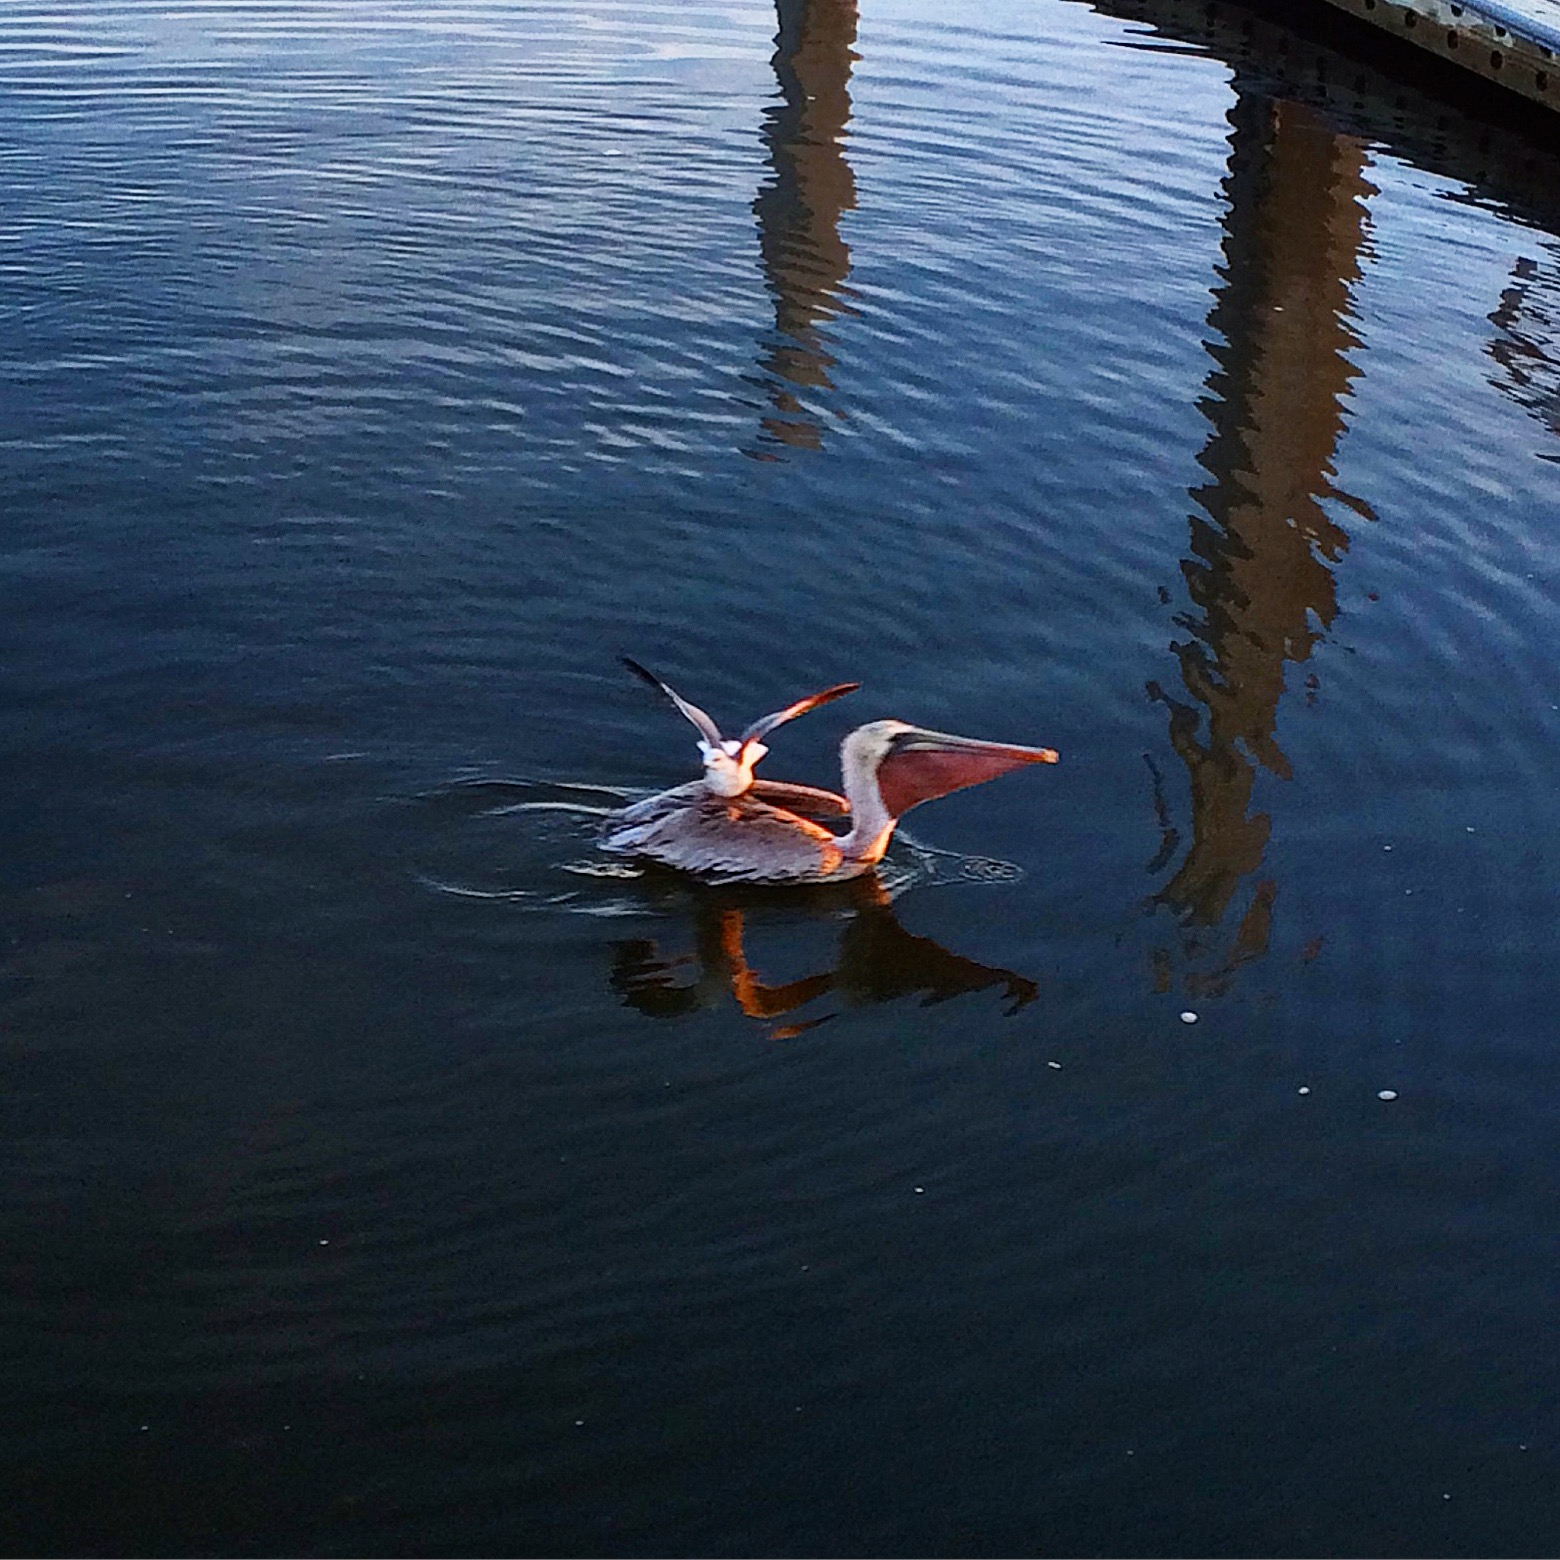 A small bird catches a ride on the back of an easy-going Pelican